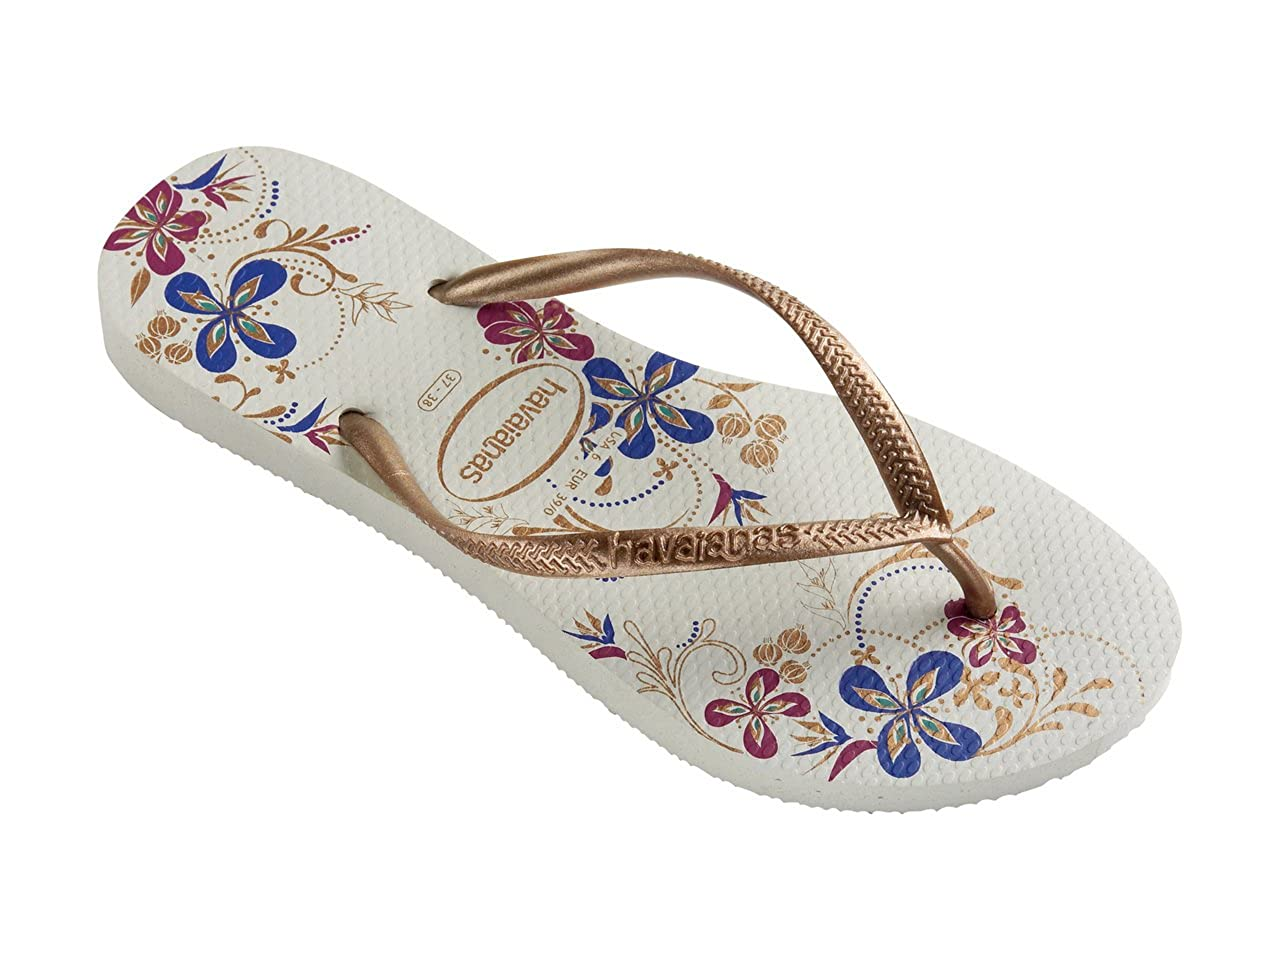 ee7f09dea4cc9 Womens Havaianas Slim Season White Rose Gold Flip Flops Sandals   Amazon.co.uk  Shoes   Bags